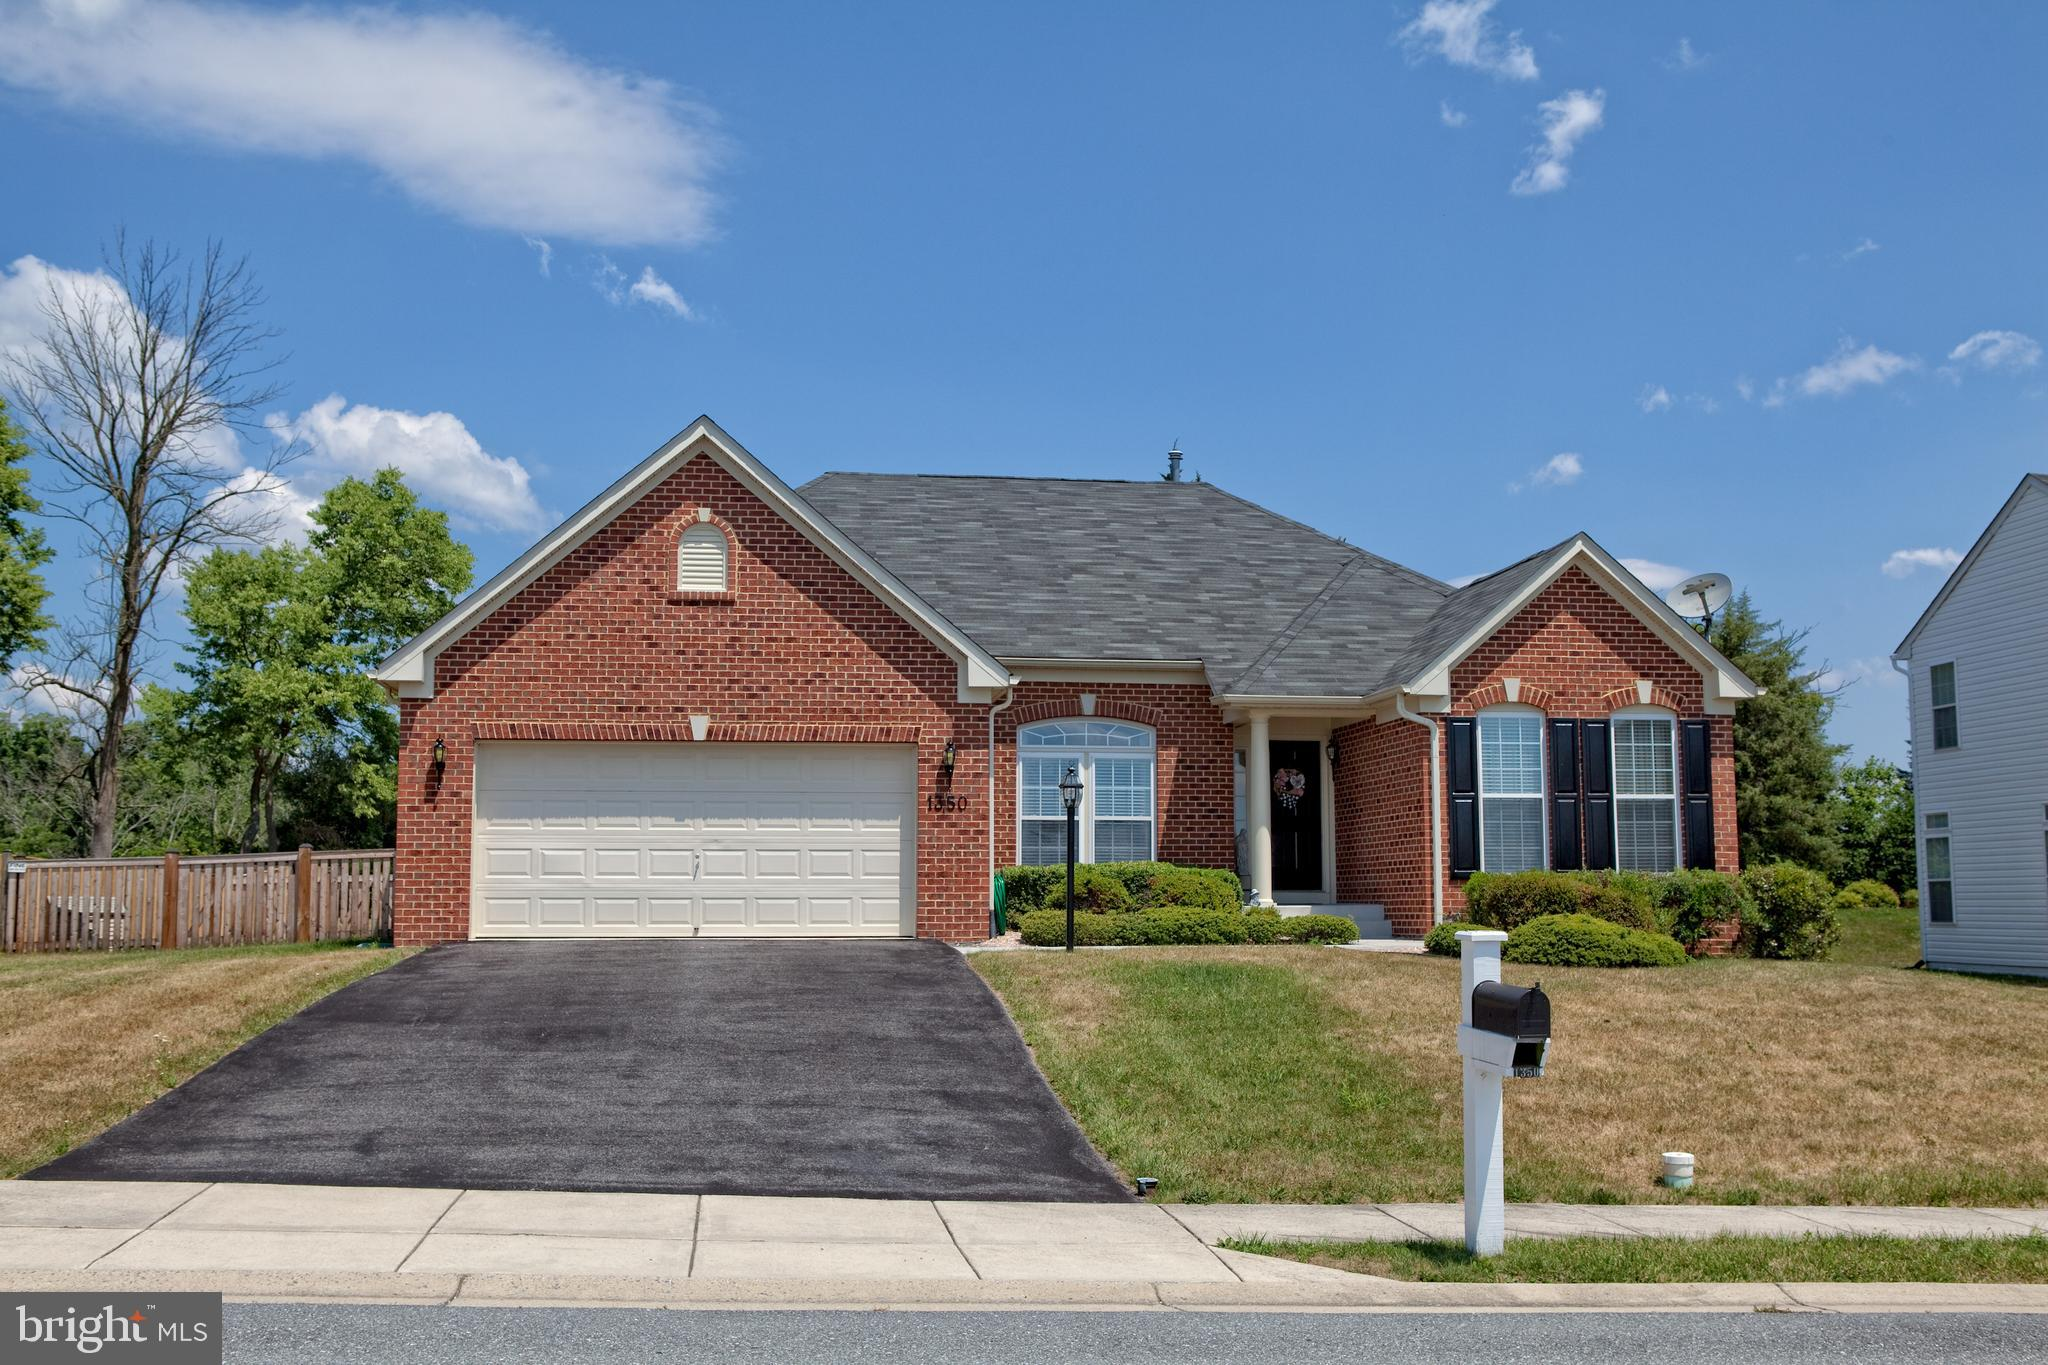 Immaculate rancher in sought after Brookfield subdivision! Ryan Homes Springbrook model located on a